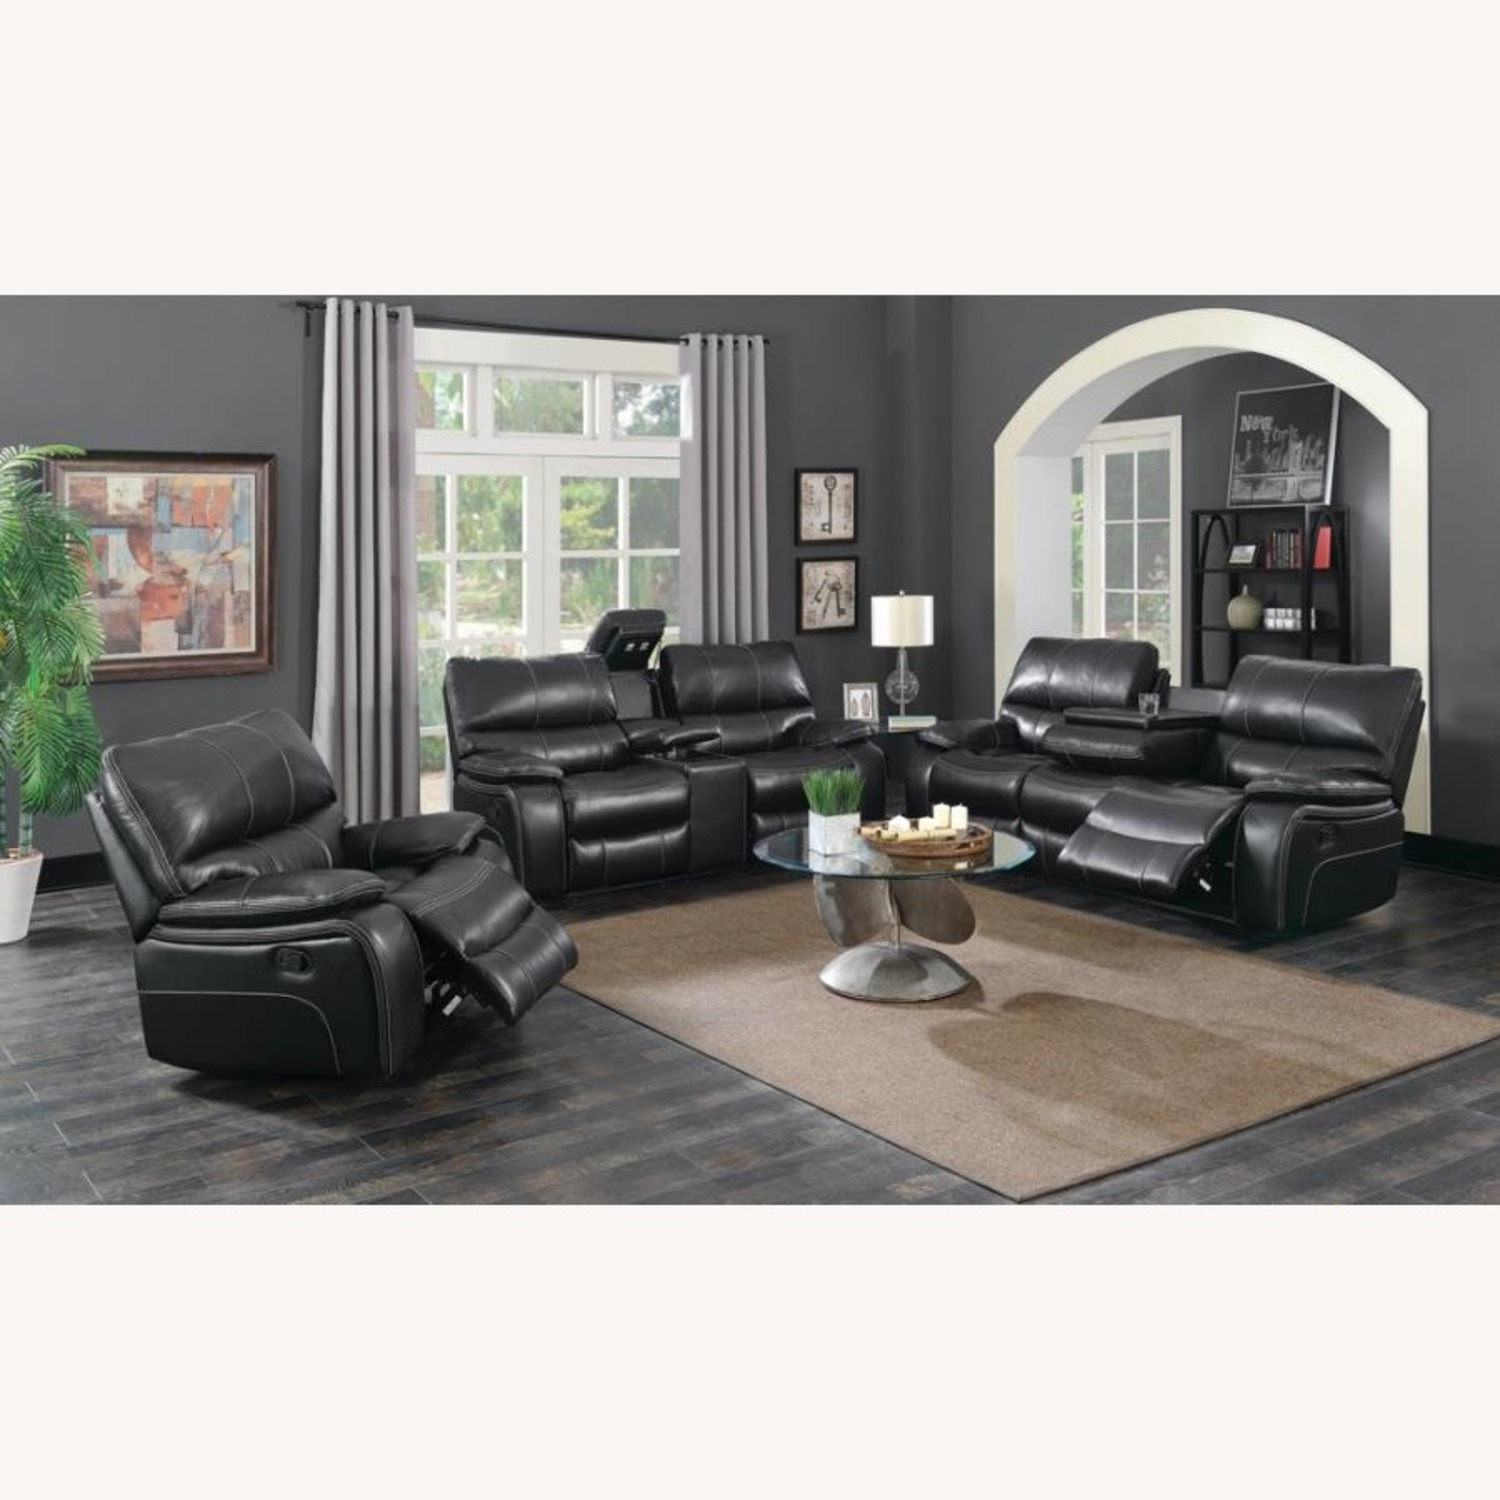 Glider Recliner W/ Scooped Seating In Black Finish - image-5